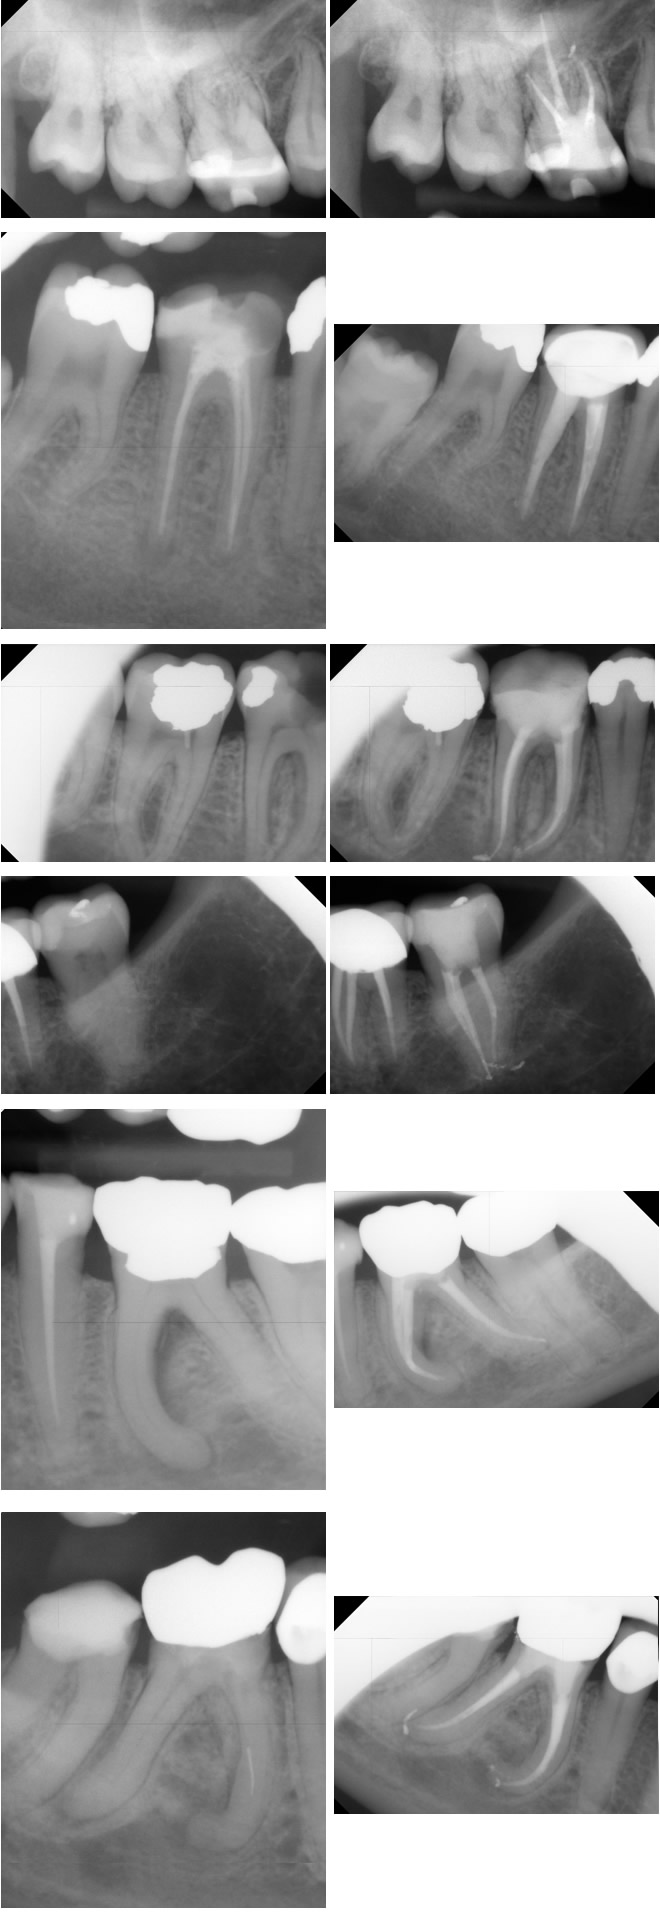 X ray of root canal